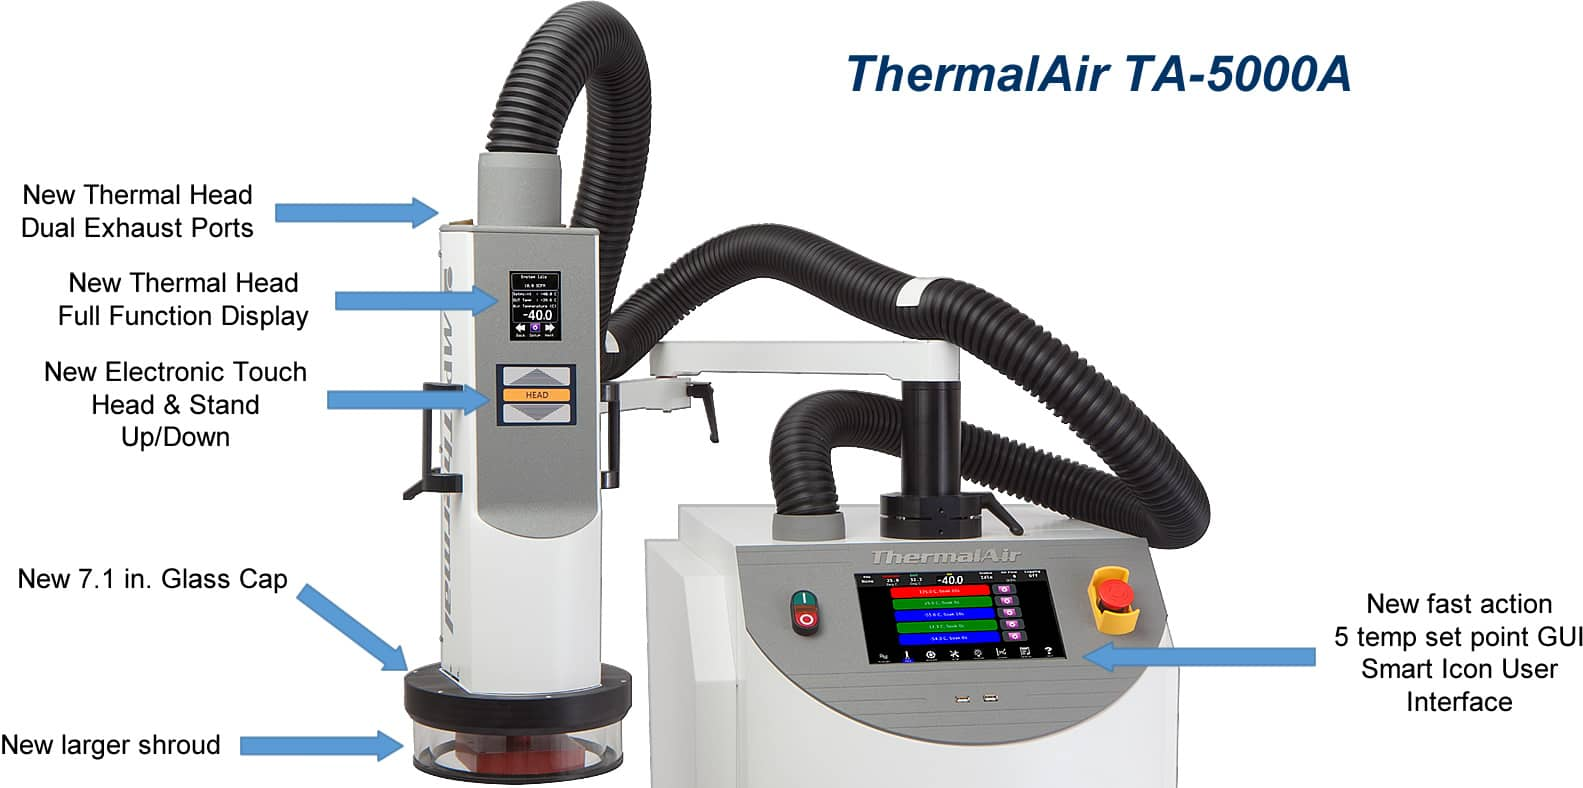 Thermal Stream Features